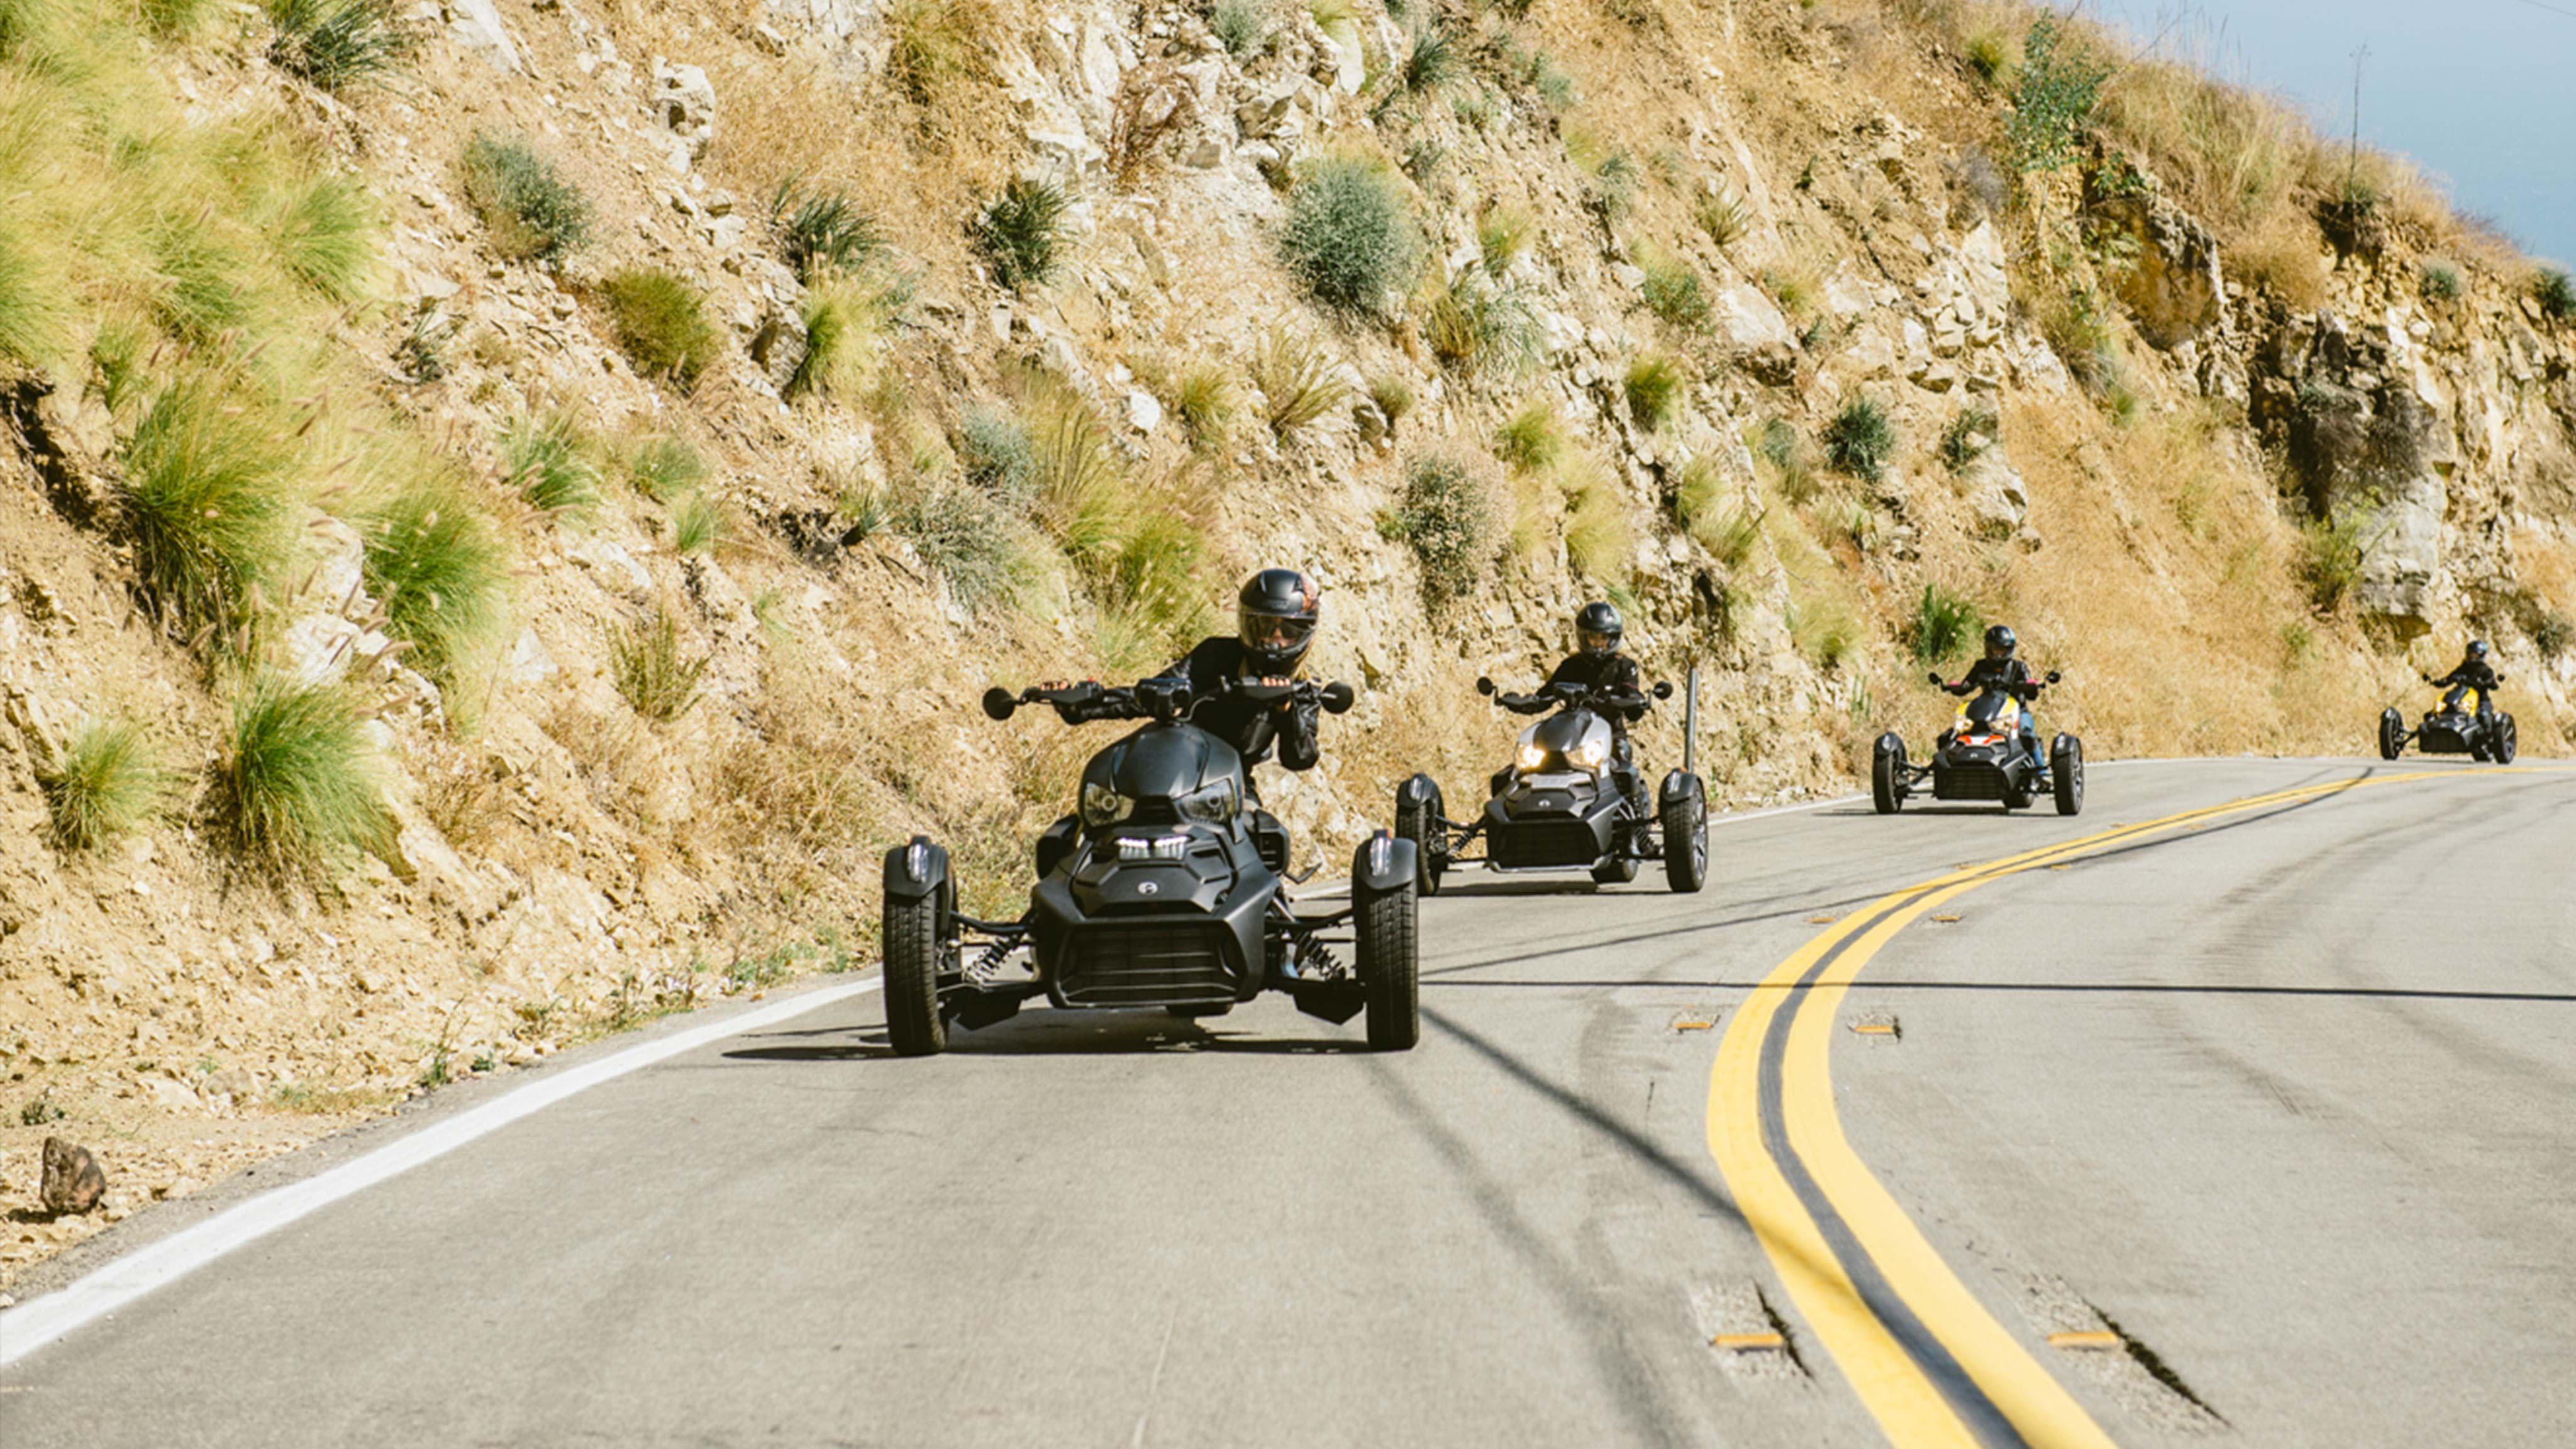 Four Can-Am Ryker riders on curvy road